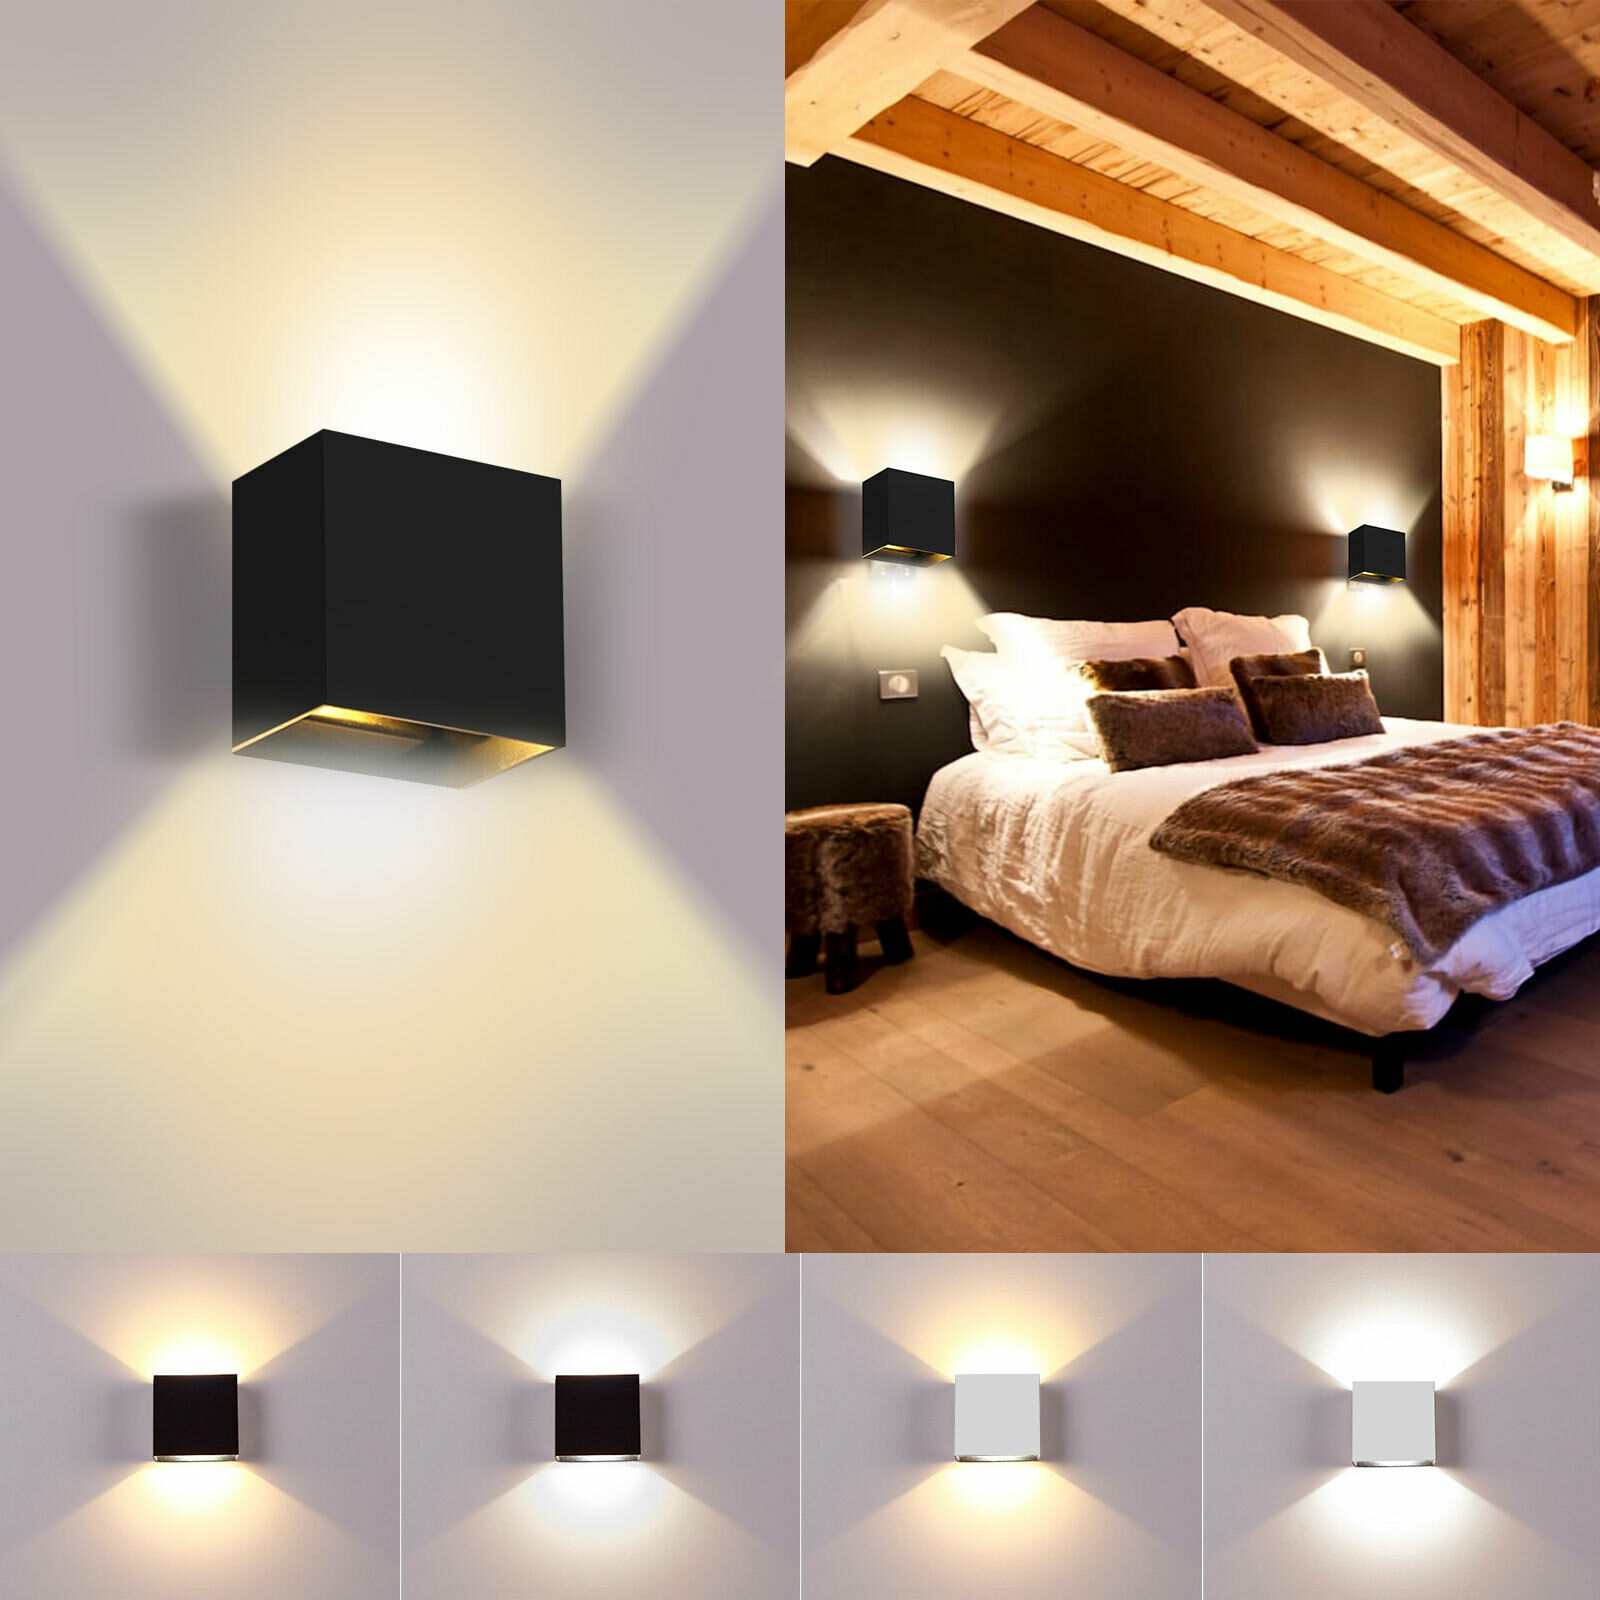 Image of: Modern Wall Lights Bedroom Wall Lamp Indoor Kitchen Wall Sconce Shop Lighting For Sale Online Ebay